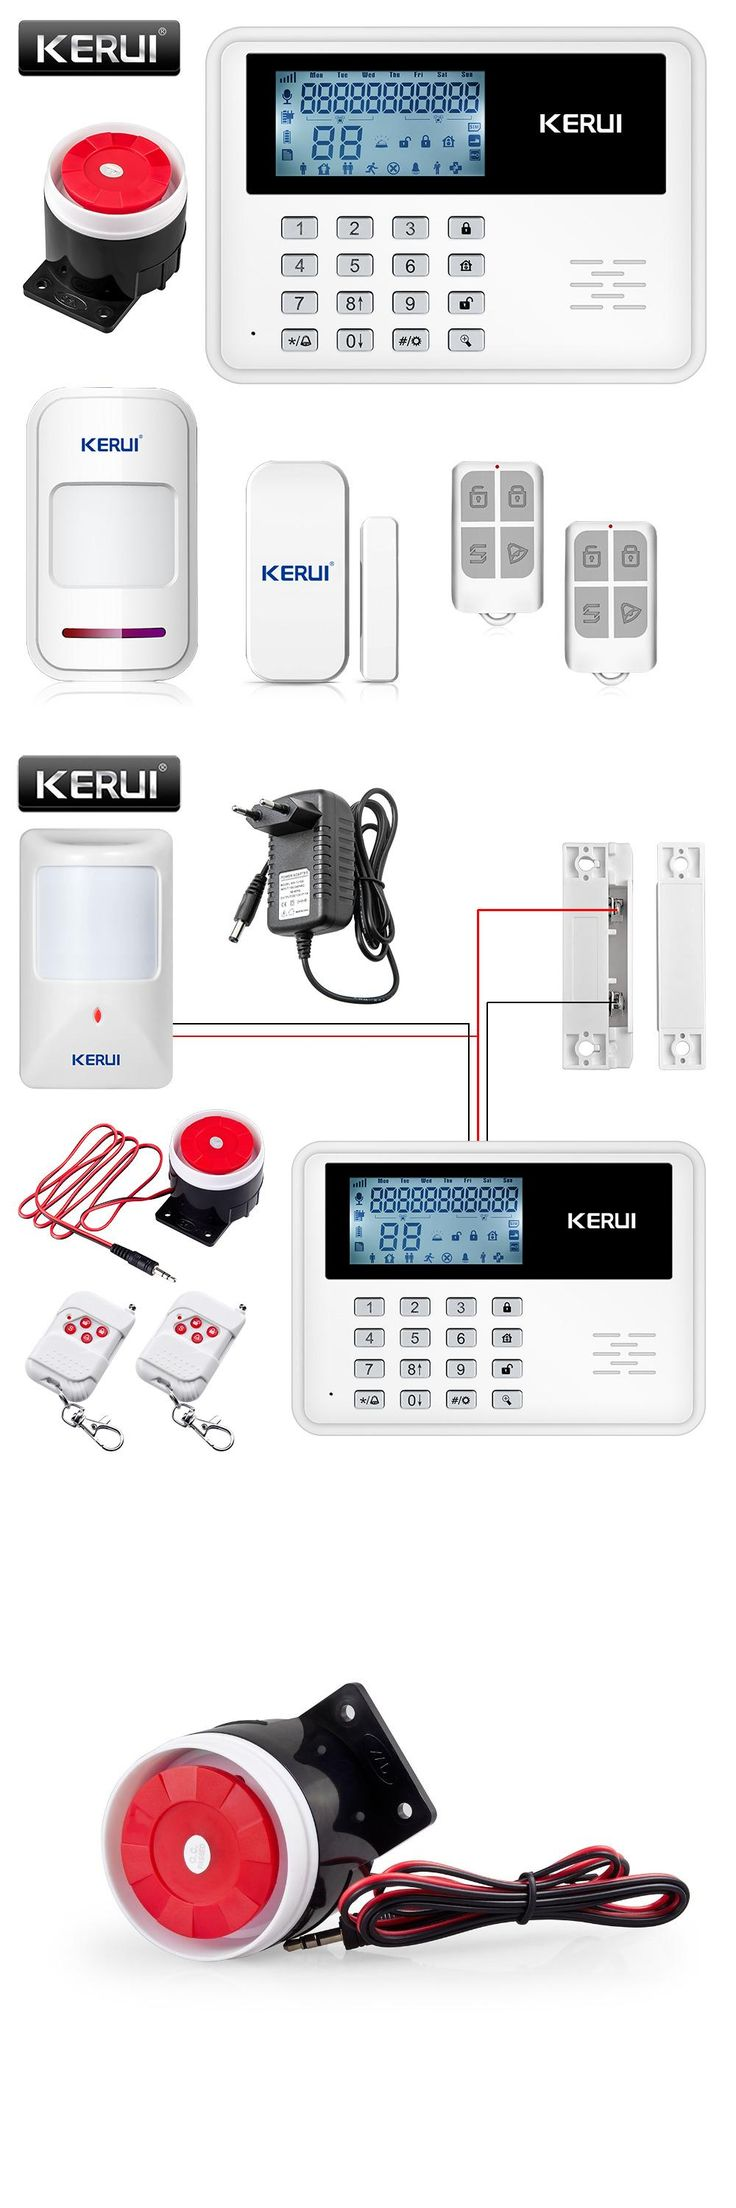 [Visit to Buy] KERUI 5900G GSM Alarm System Wireless Wired Alarm Systems Security Home Alarm APP Control LCD speaker Keyboard Sensor Alarm #Advertisement